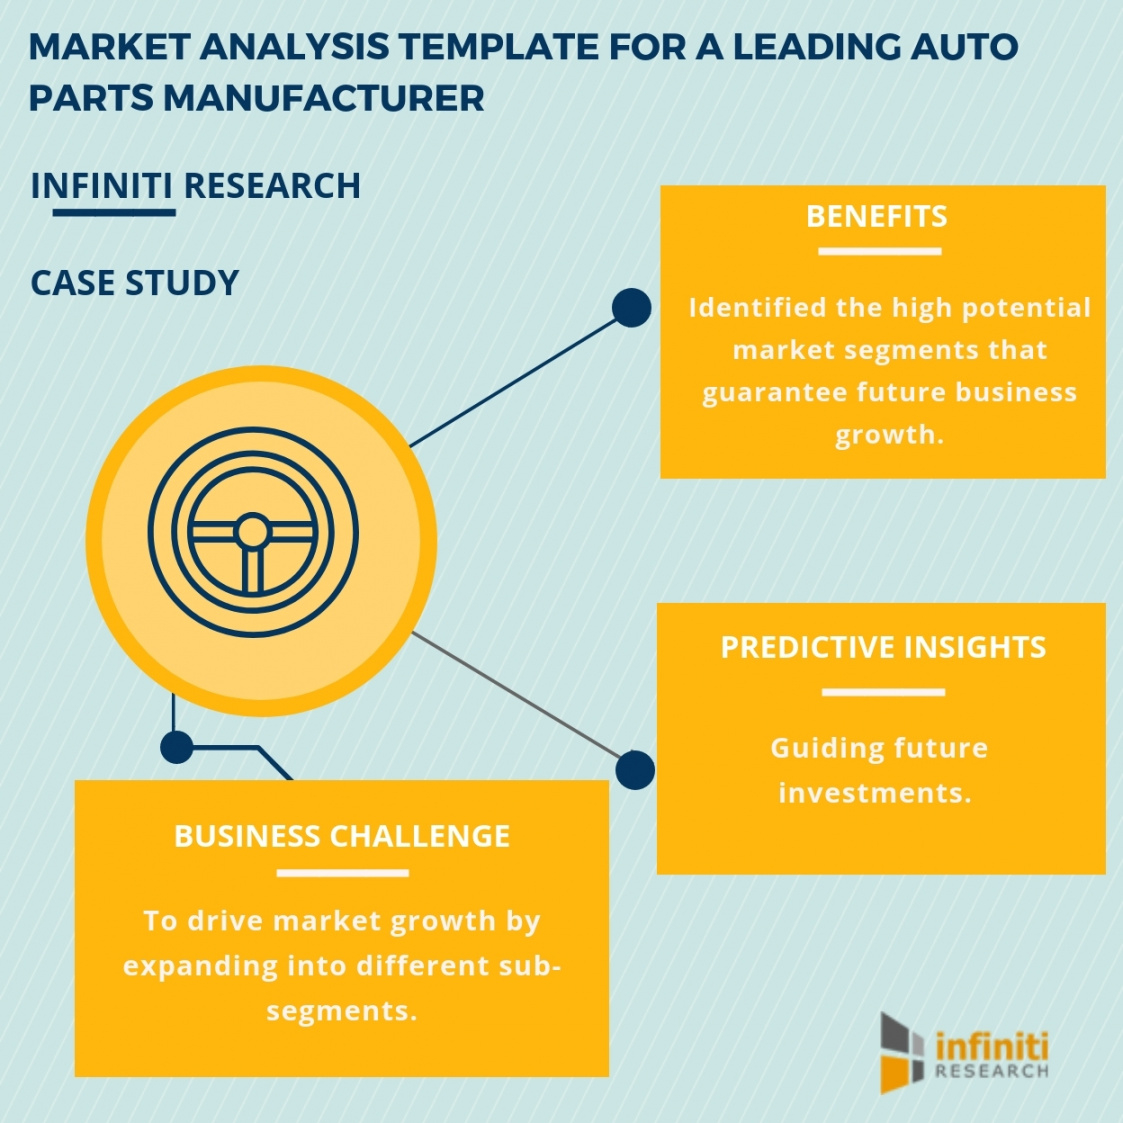 evaluating investment potential in new markets with the help of market segmentation analysis template doc